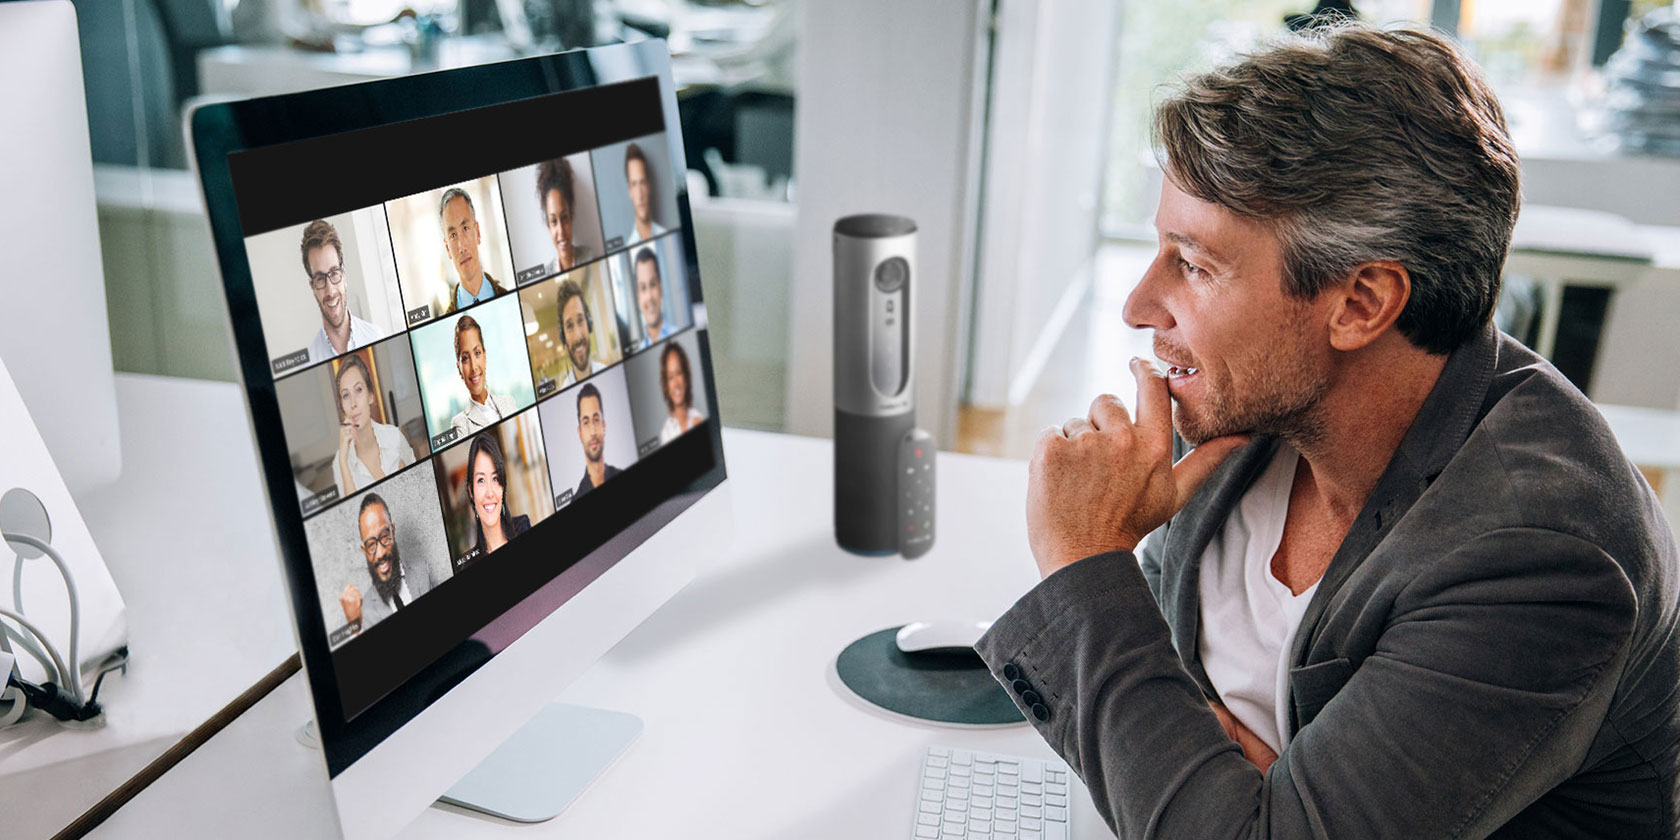 Use Zoom for Online Meetings